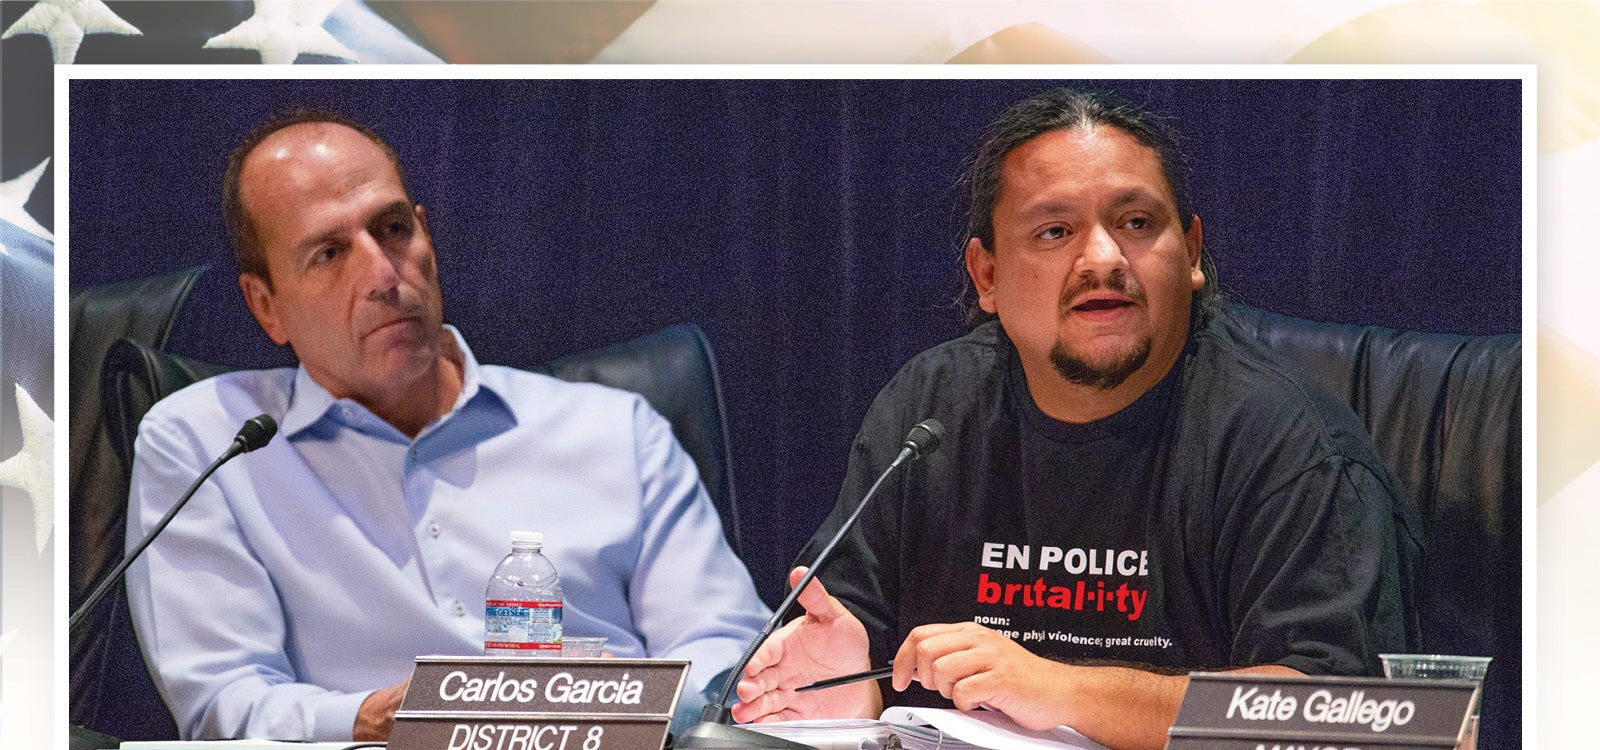 Councilman Carlos Garcia (right) makes a point as the Phoenix City Council conducts a meeting at the Orpheum Theatre in downtown Phoenix, July 2, 2019. Councilman Sal Dicicio listens (left).